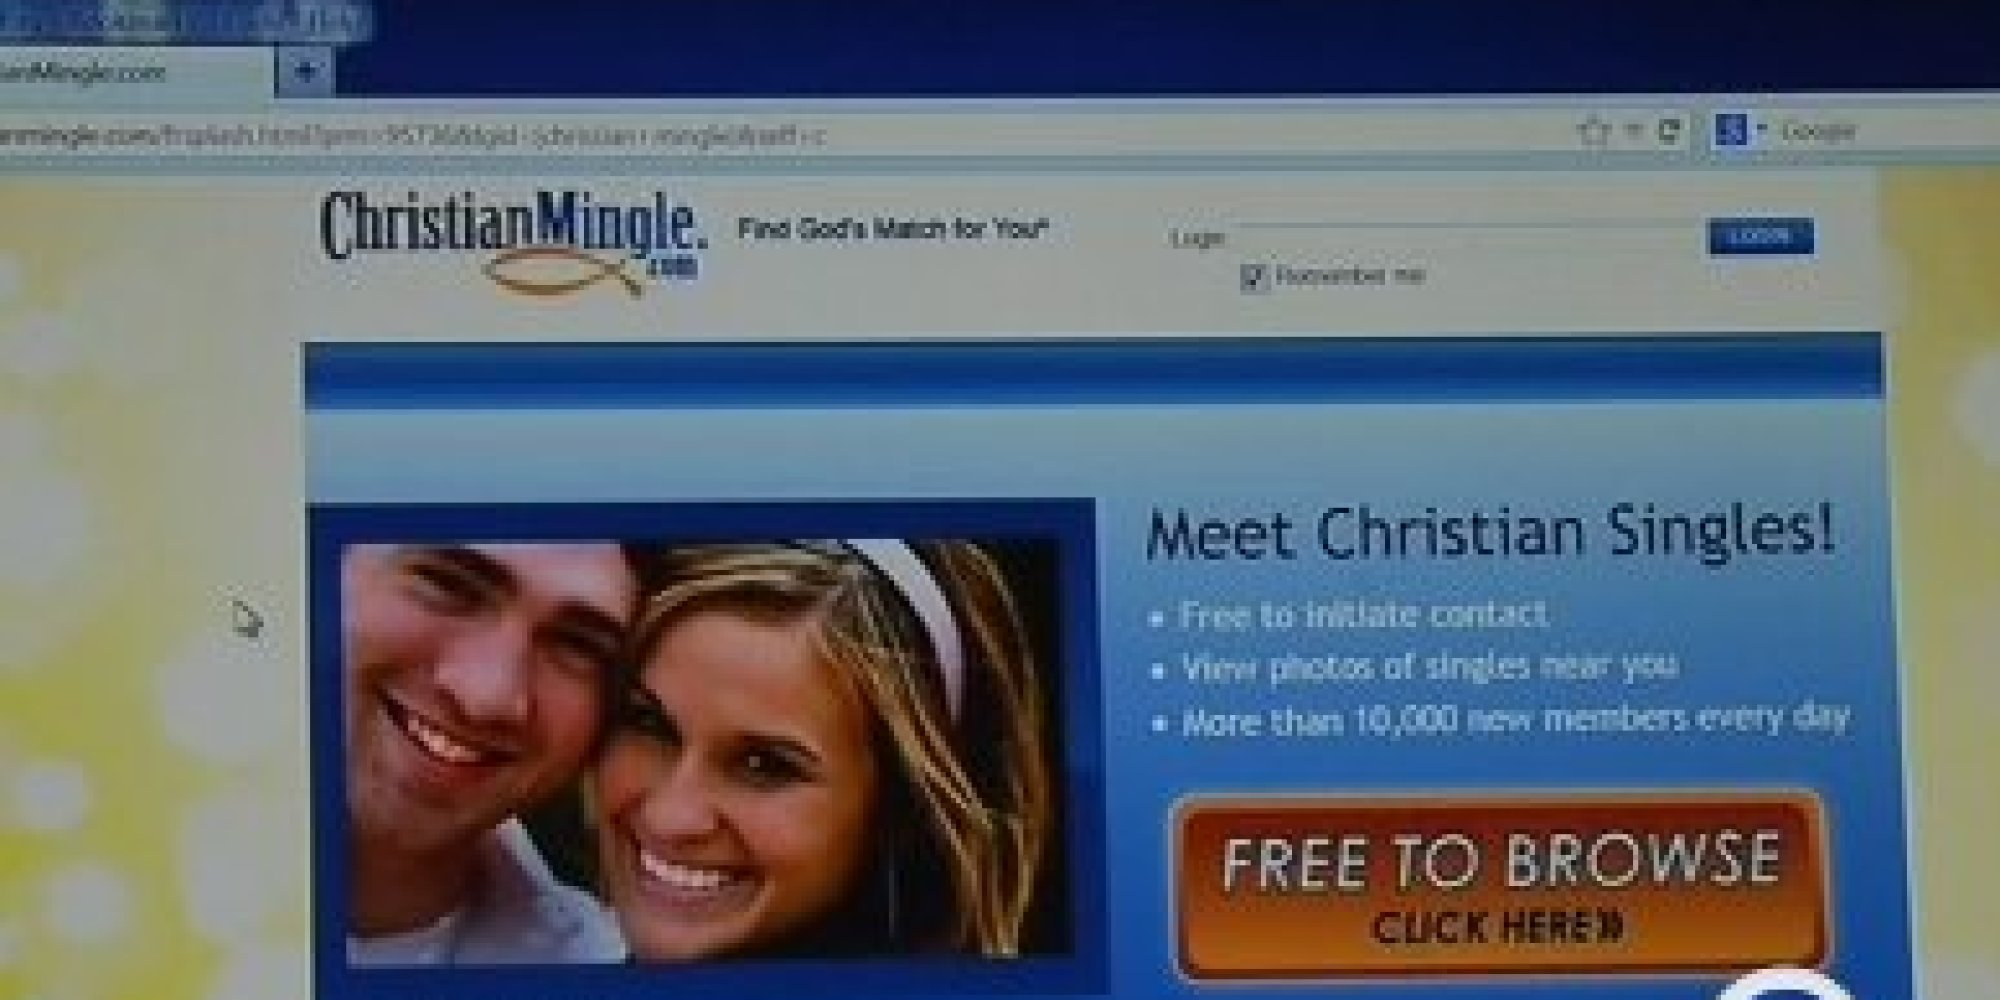 monaca christian women dating site Join blackchristianpeoplemeetcom and meet new singles for black christian dating blackchristianpeoplemeetcom is a niche, black christian dating service for single black christian men and single black christian women become a member of blackchristianpeoplemeetcom and learn more about black christian dating online black christian dating.